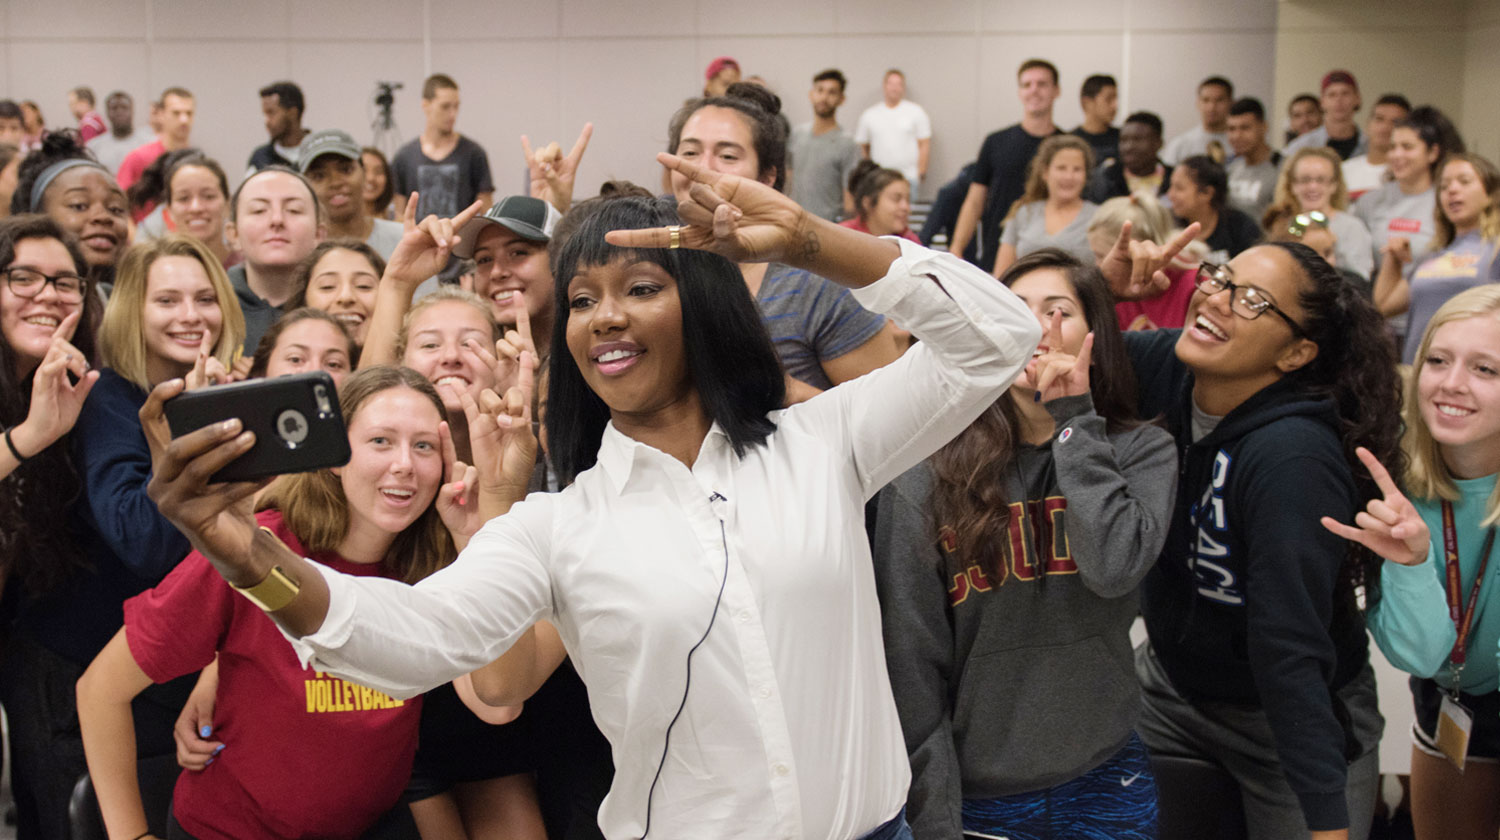 Photo of Carmelita Jeter taking a 'selfie' with CSUDH students